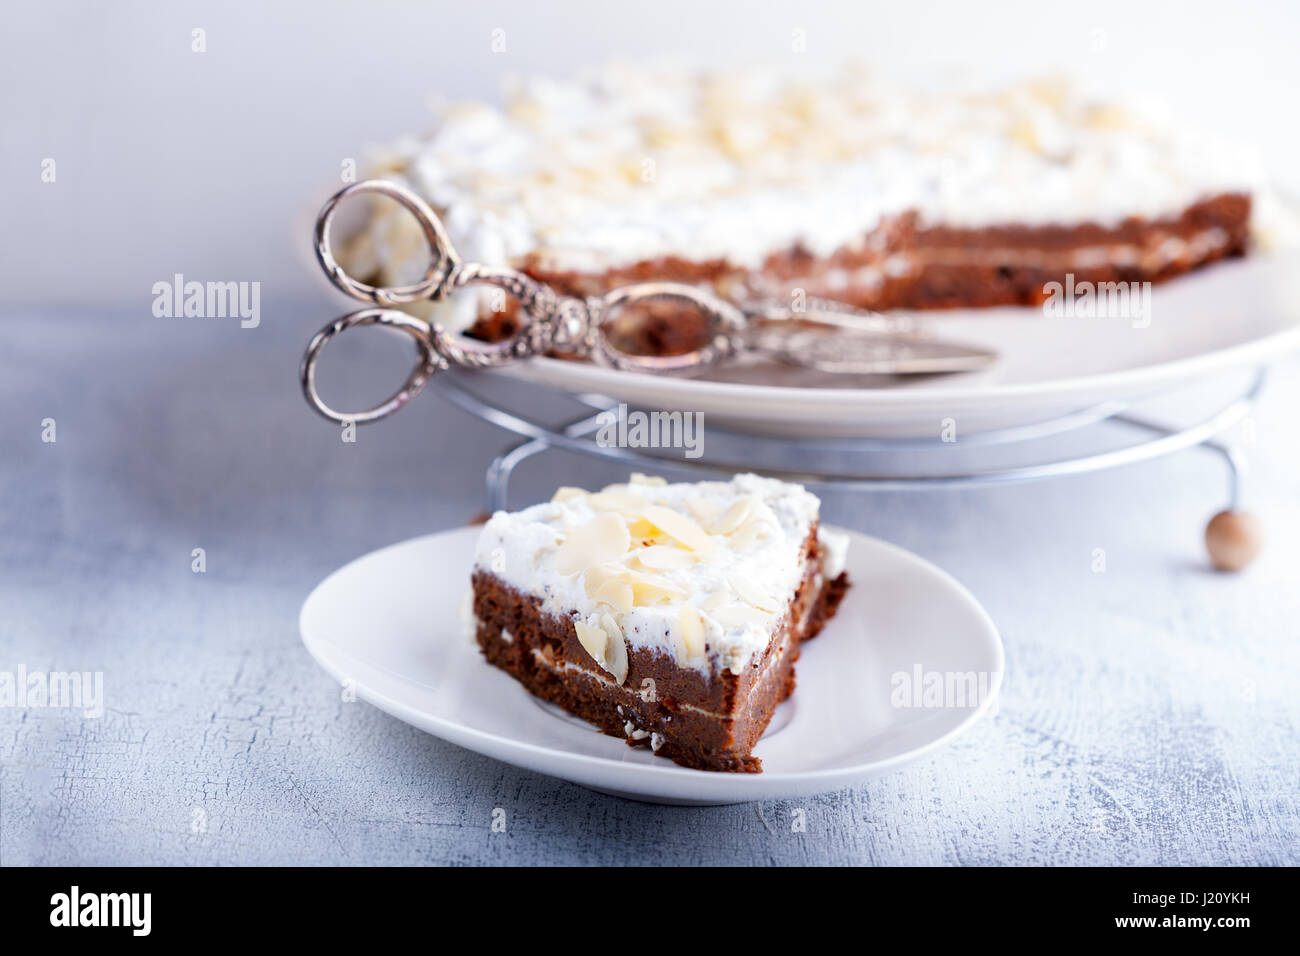 A slice of carrot cake - Stock Image